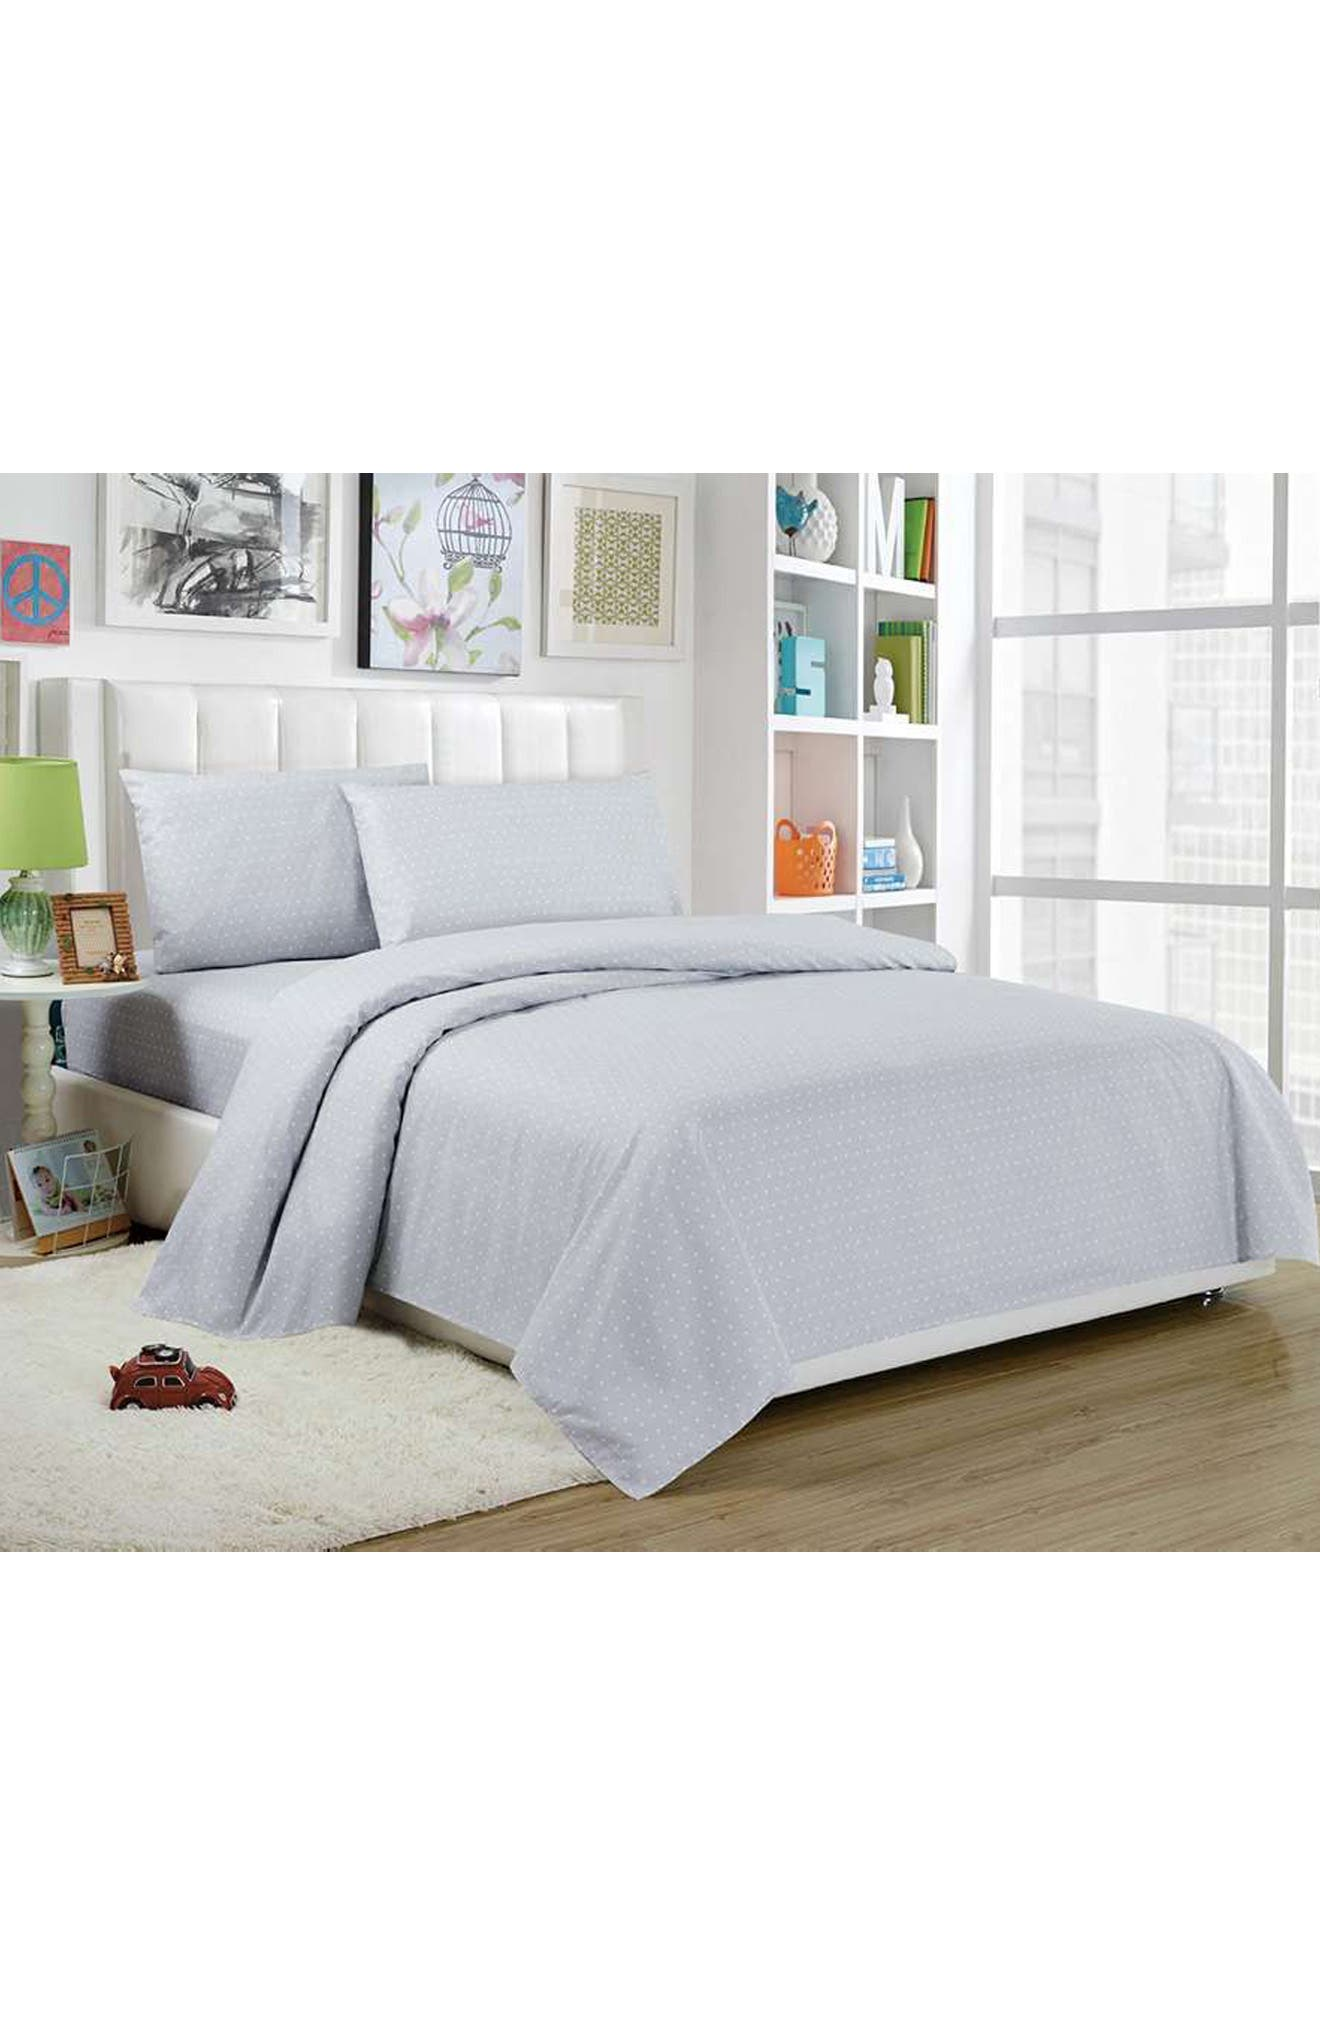 Trina 3-Piece Twin Sheet Set,                             Main thumbnail 1, color,                             GREY